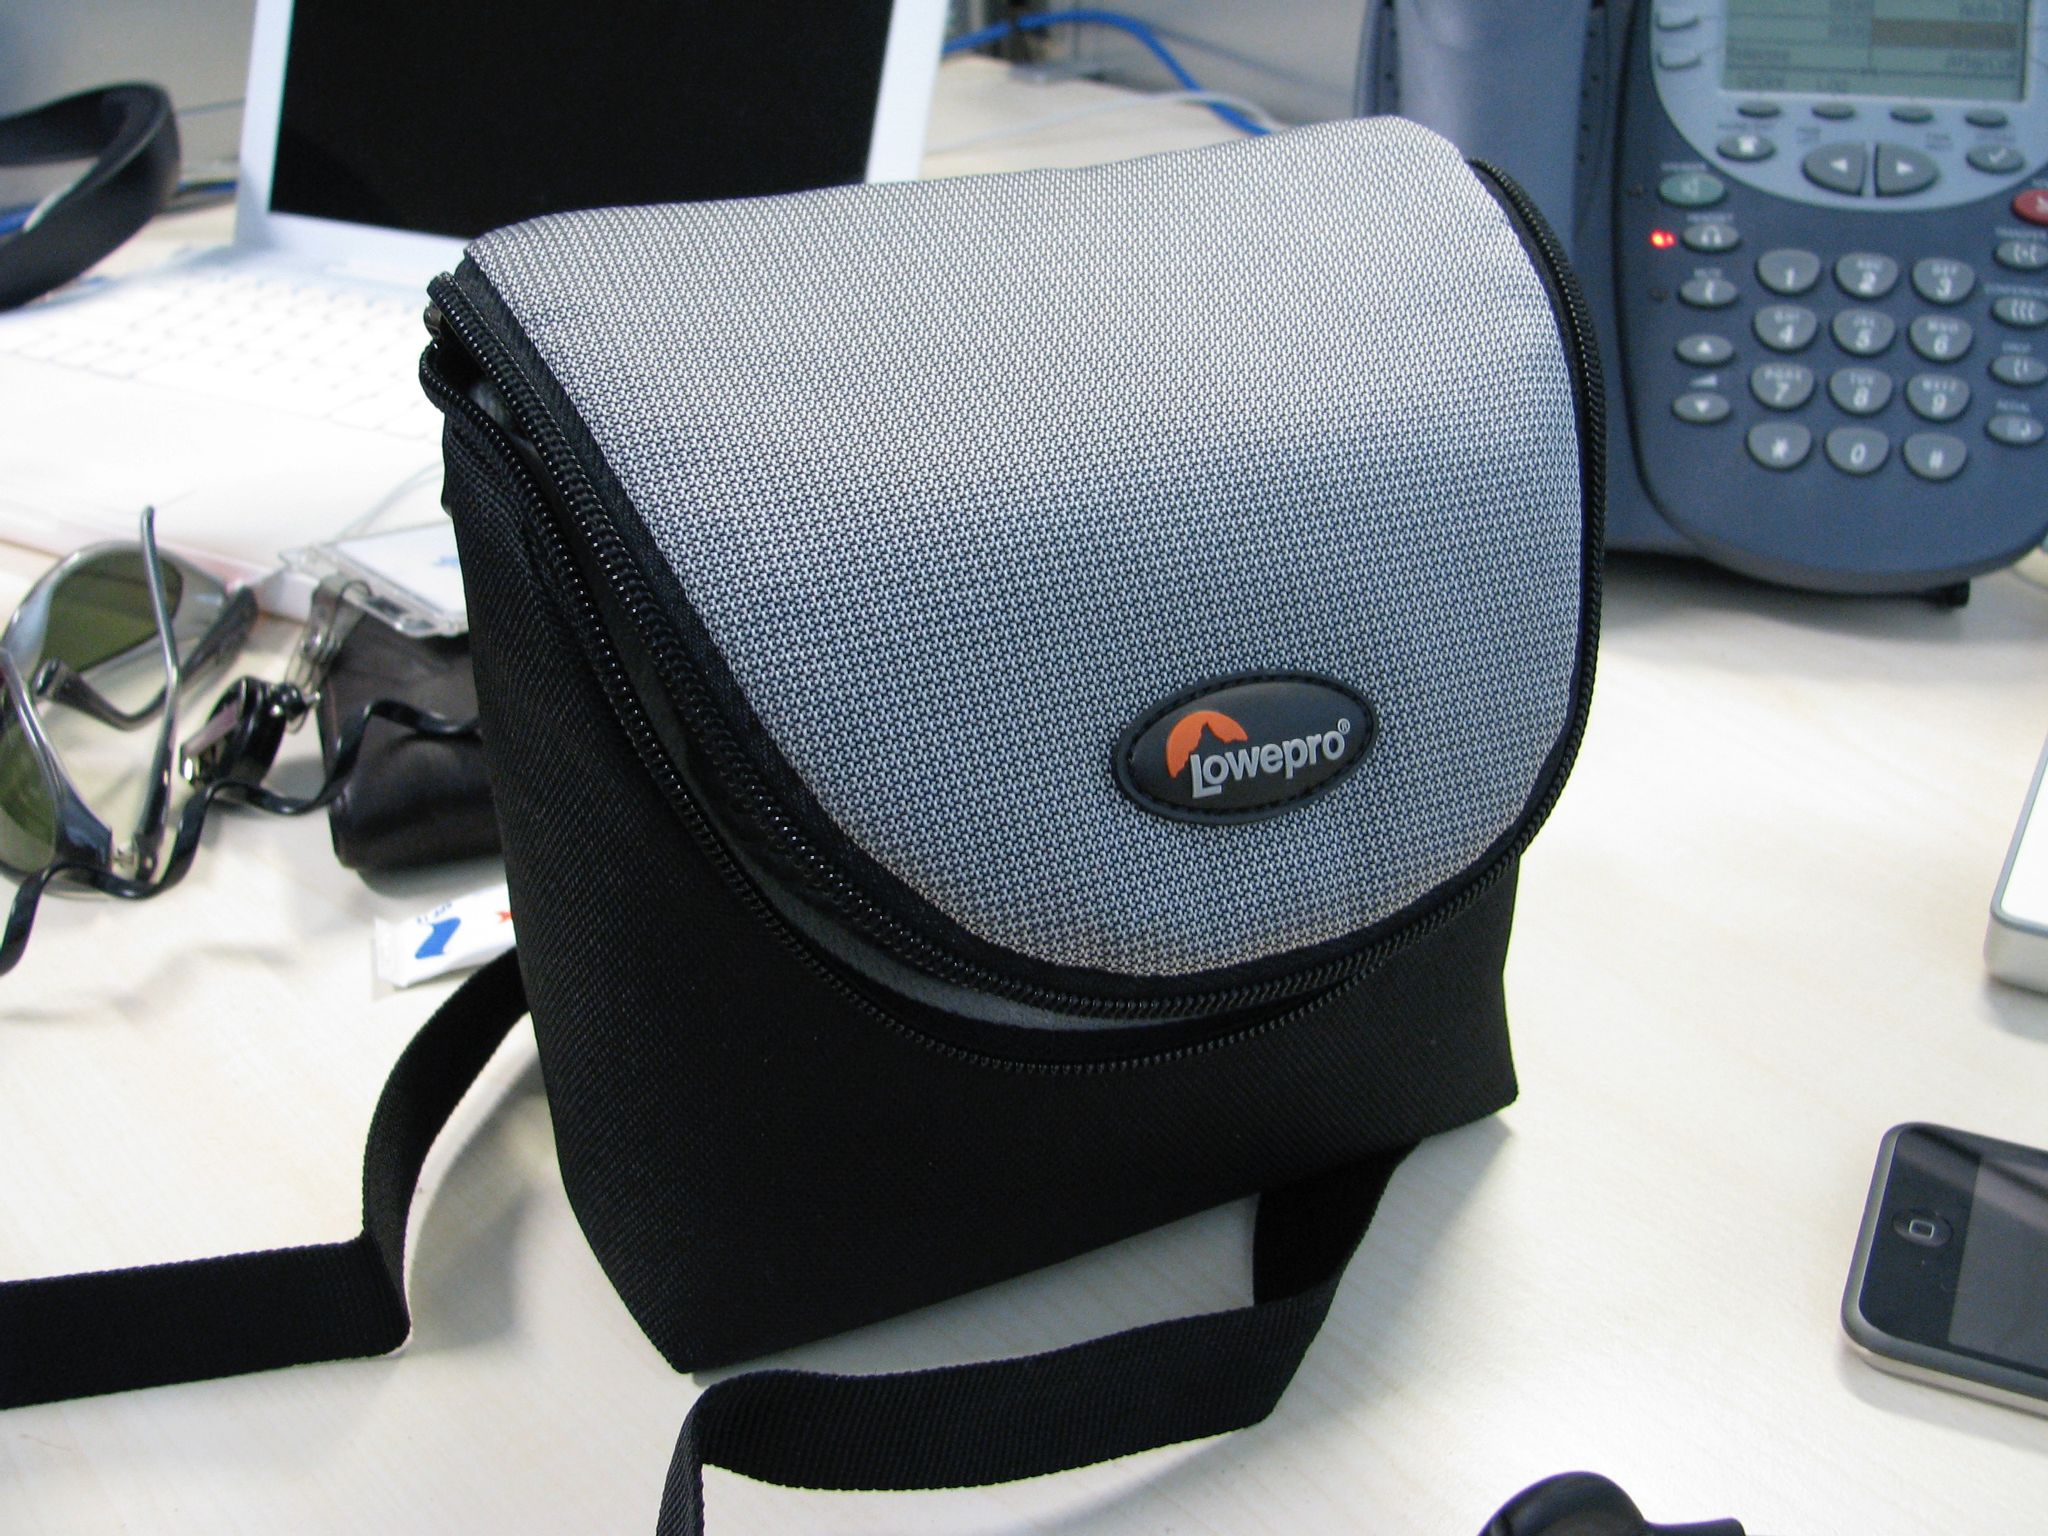 A photo of a small Lowepro brand shoulder-bag camera bag.